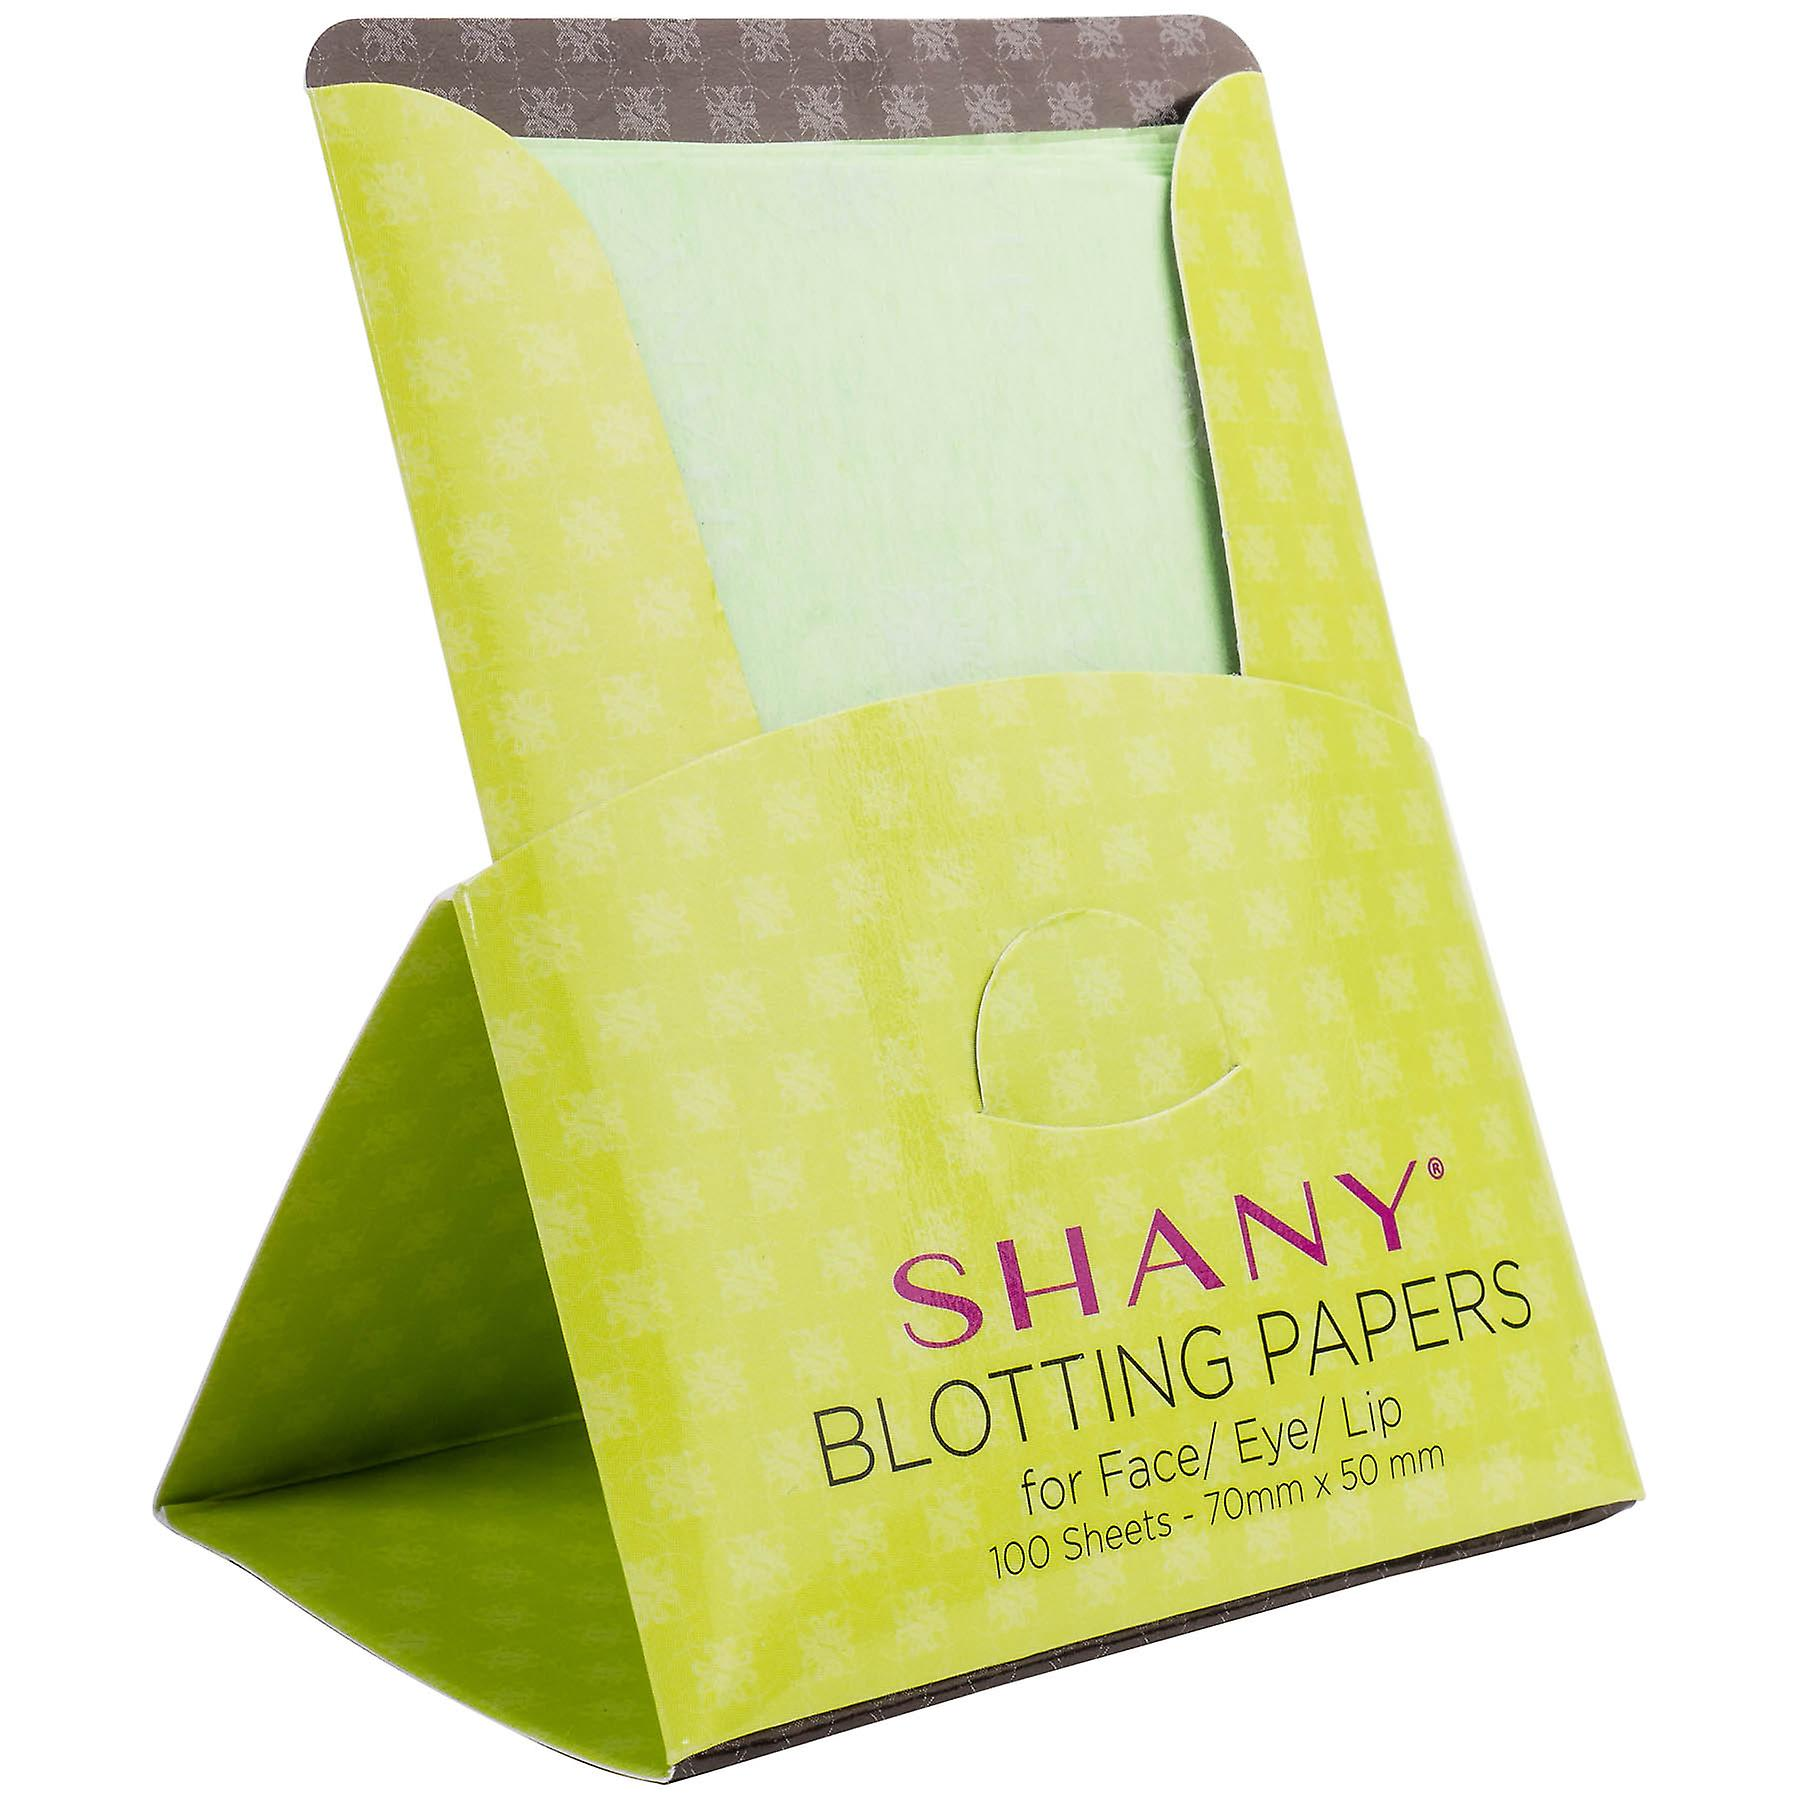 SHANY Makeup Blotting Papers: 4 Packs of 100 Oil Absorbing Paper Sheets for Face - 400 Sheets